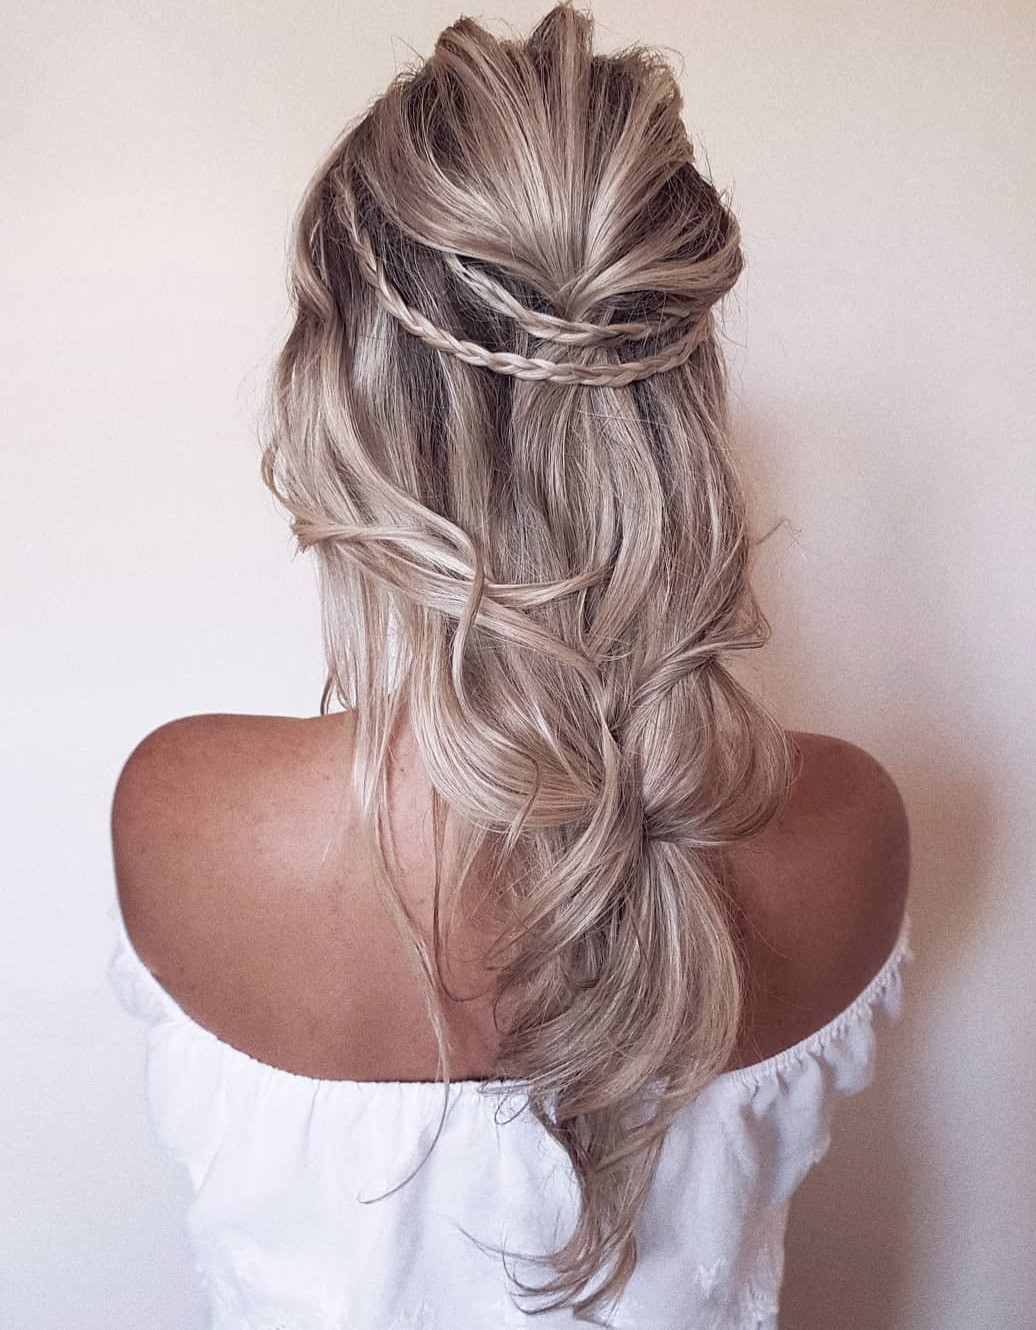 Half Updo with Thin Braids